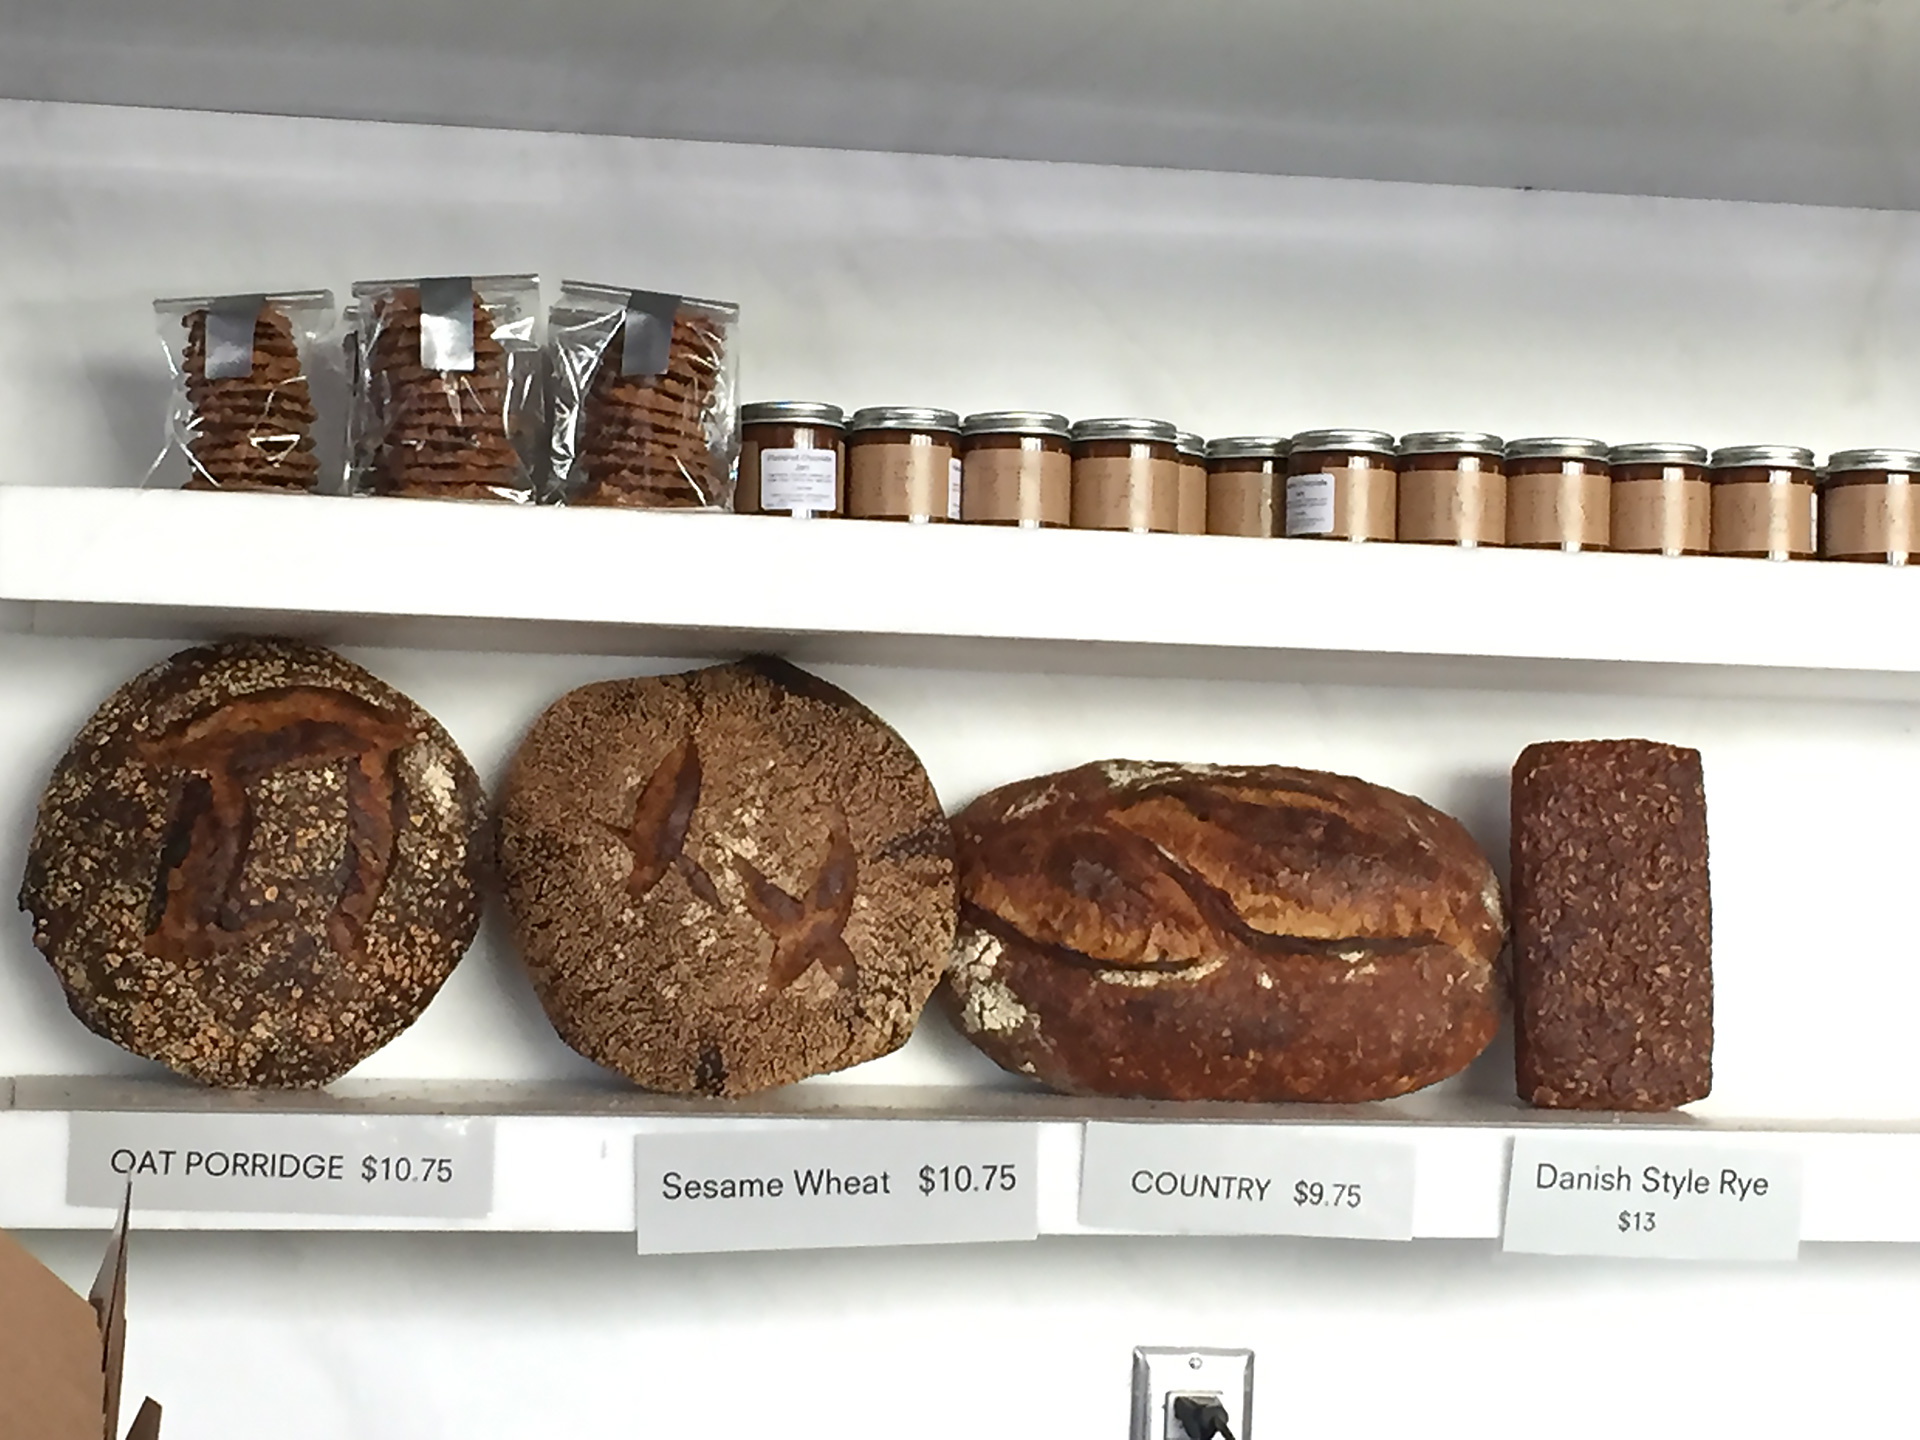 Tartine's Danish Style Rye on display along with other breads at the Manufactory.